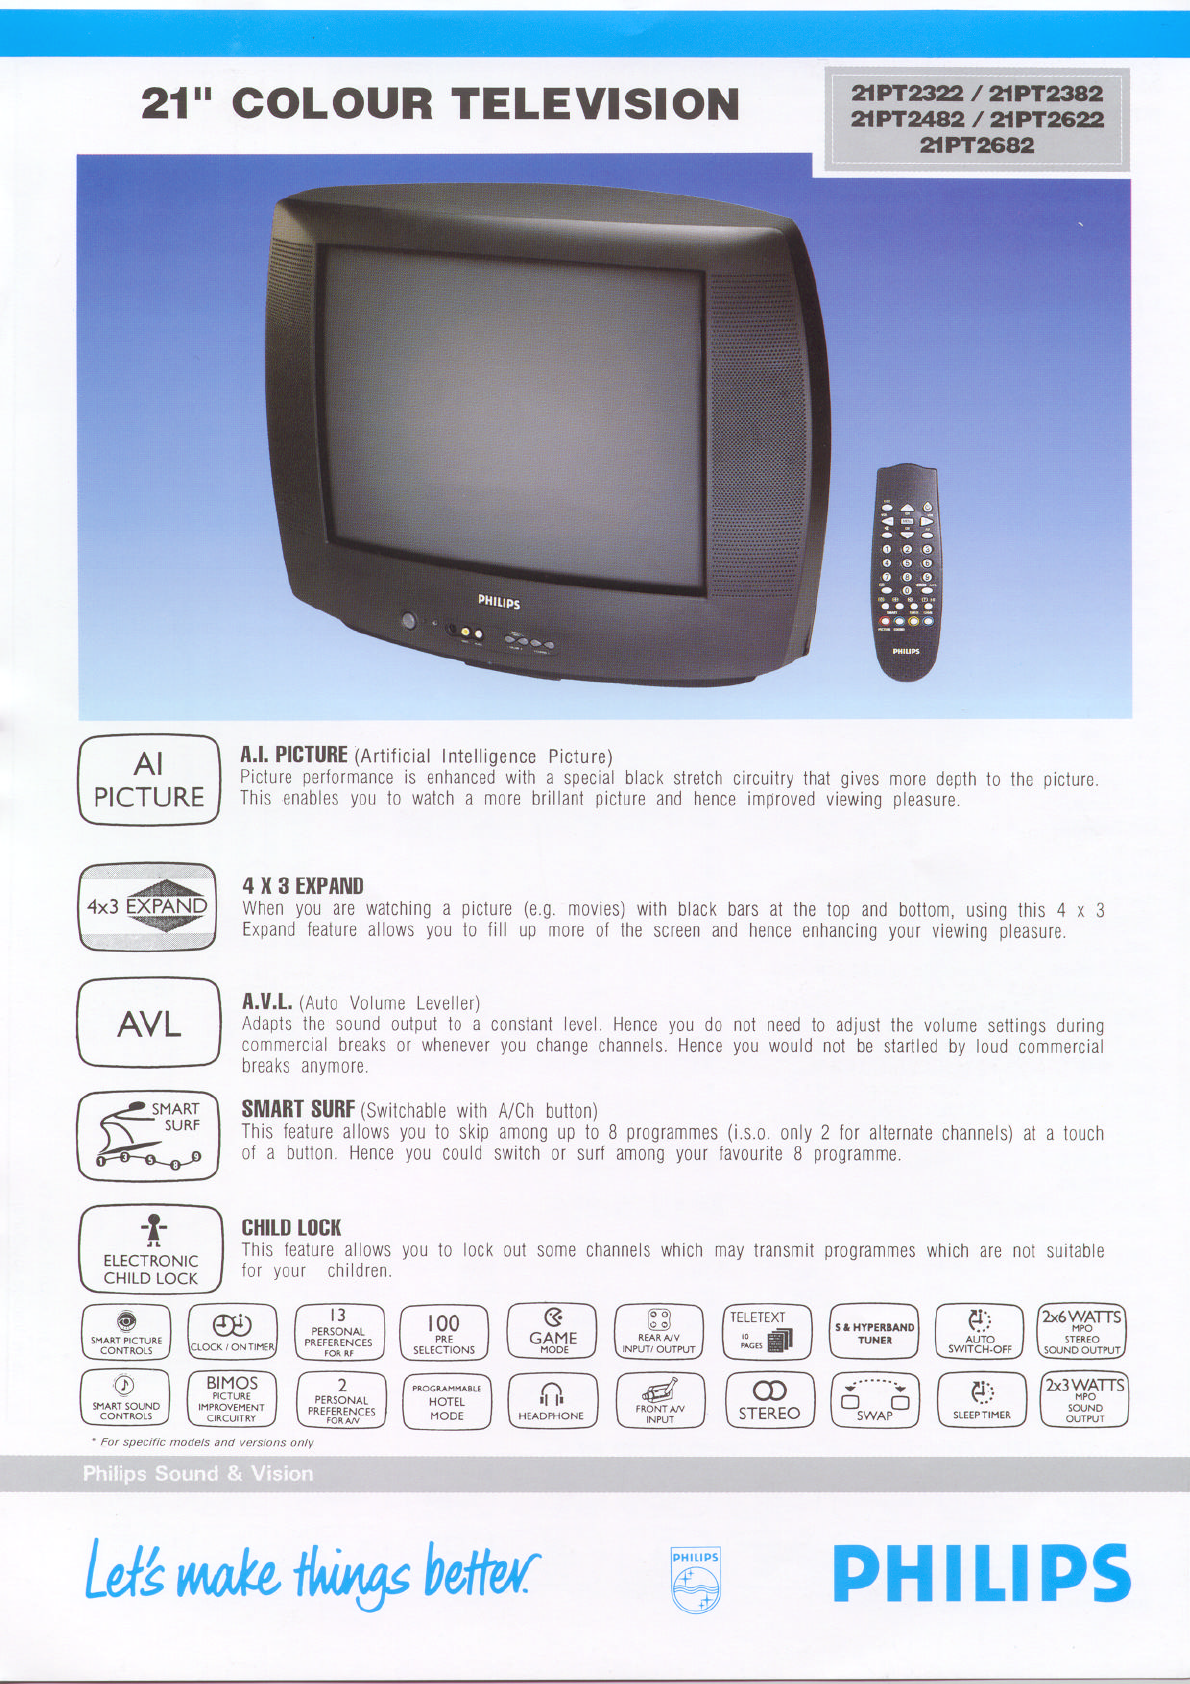 philips crt television 21pt2622 user guide manualsonline com rh tv manualsonline com Philips TV Problems Philips TV Troubleshooting